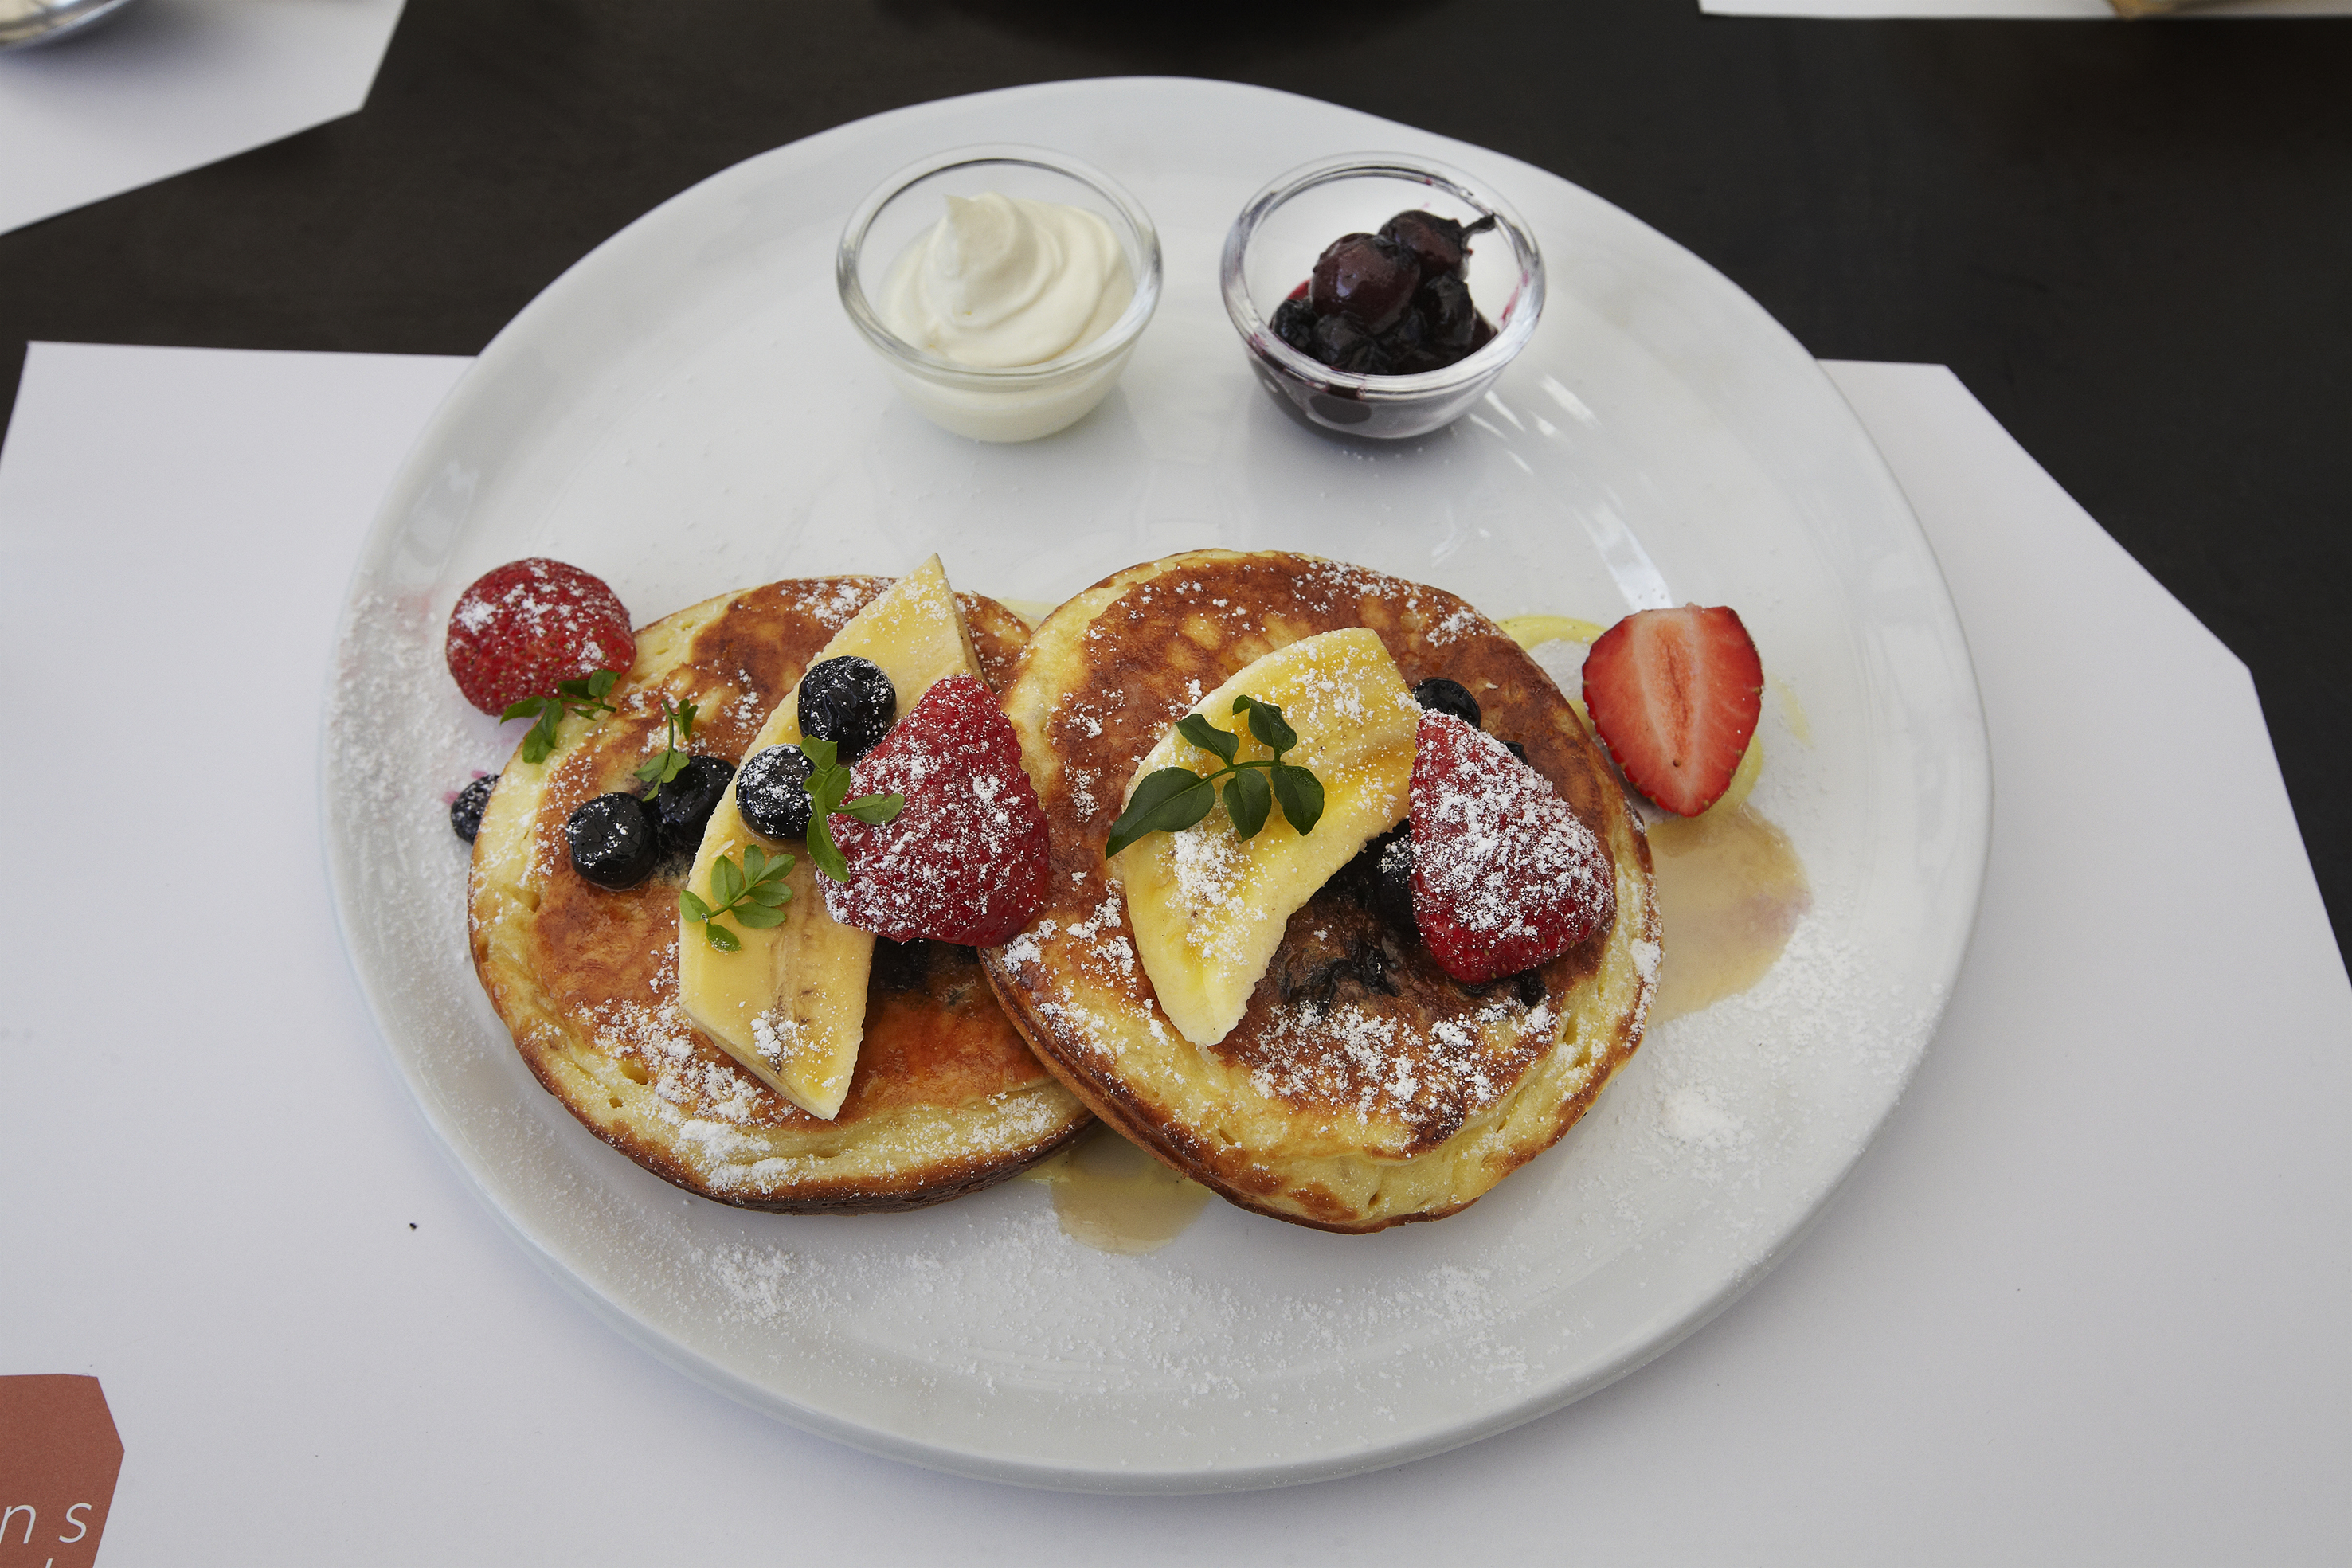 Blueberry pancakes of The Queens Park